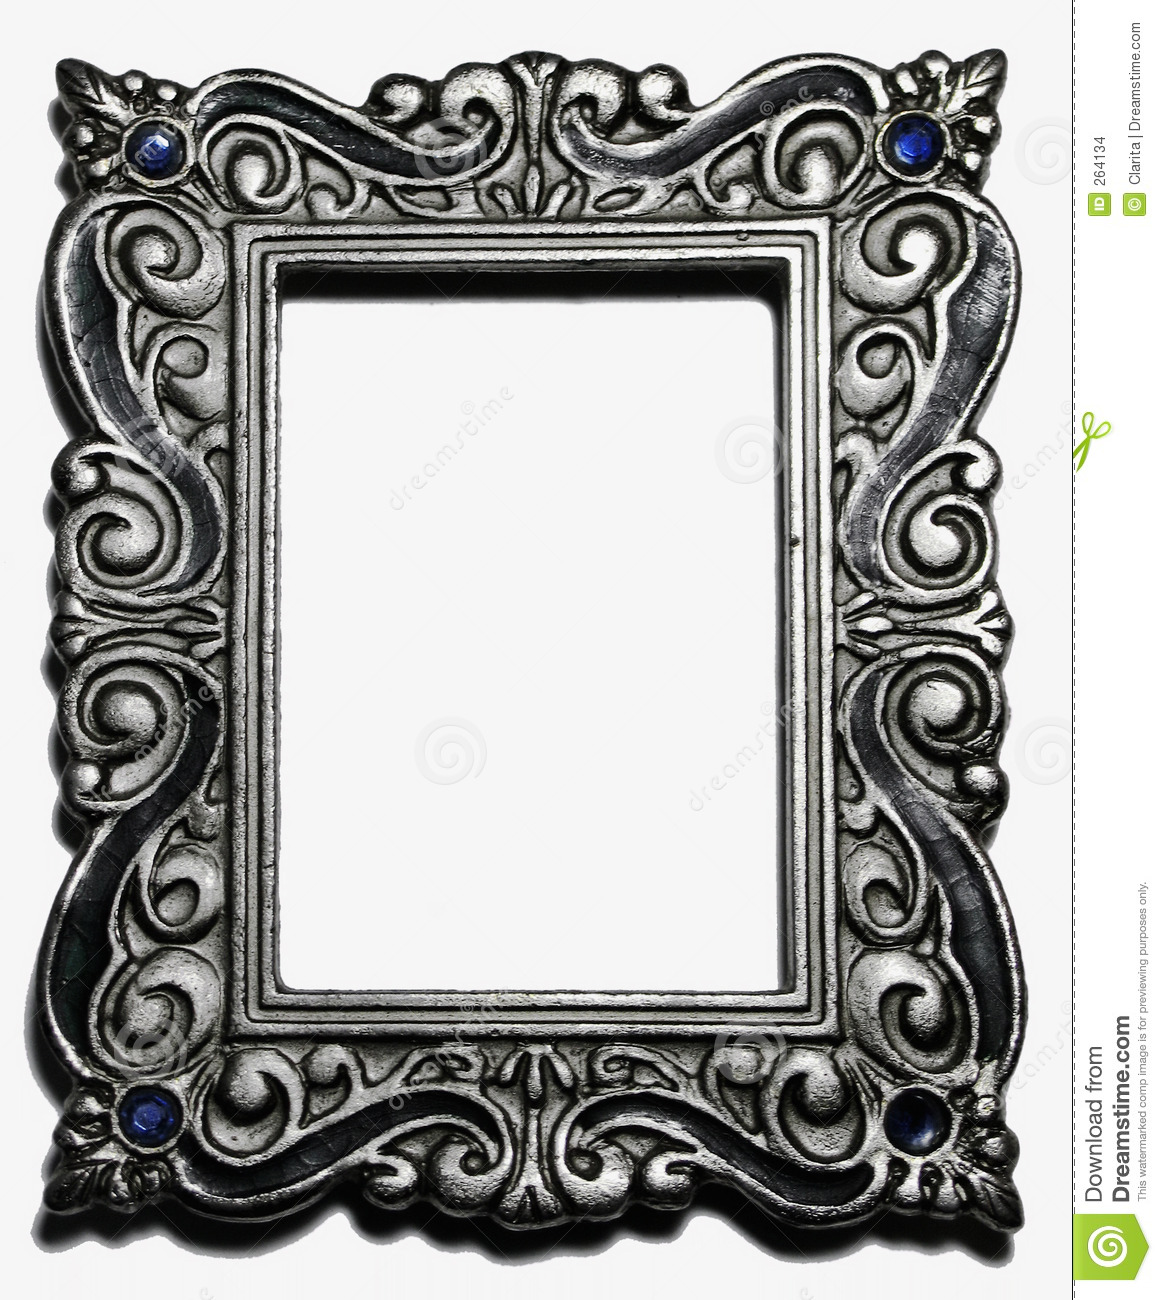 antique silver picture frame stock photo image 264134. Black Bedroom Furniture Sets. Home Design Ideas